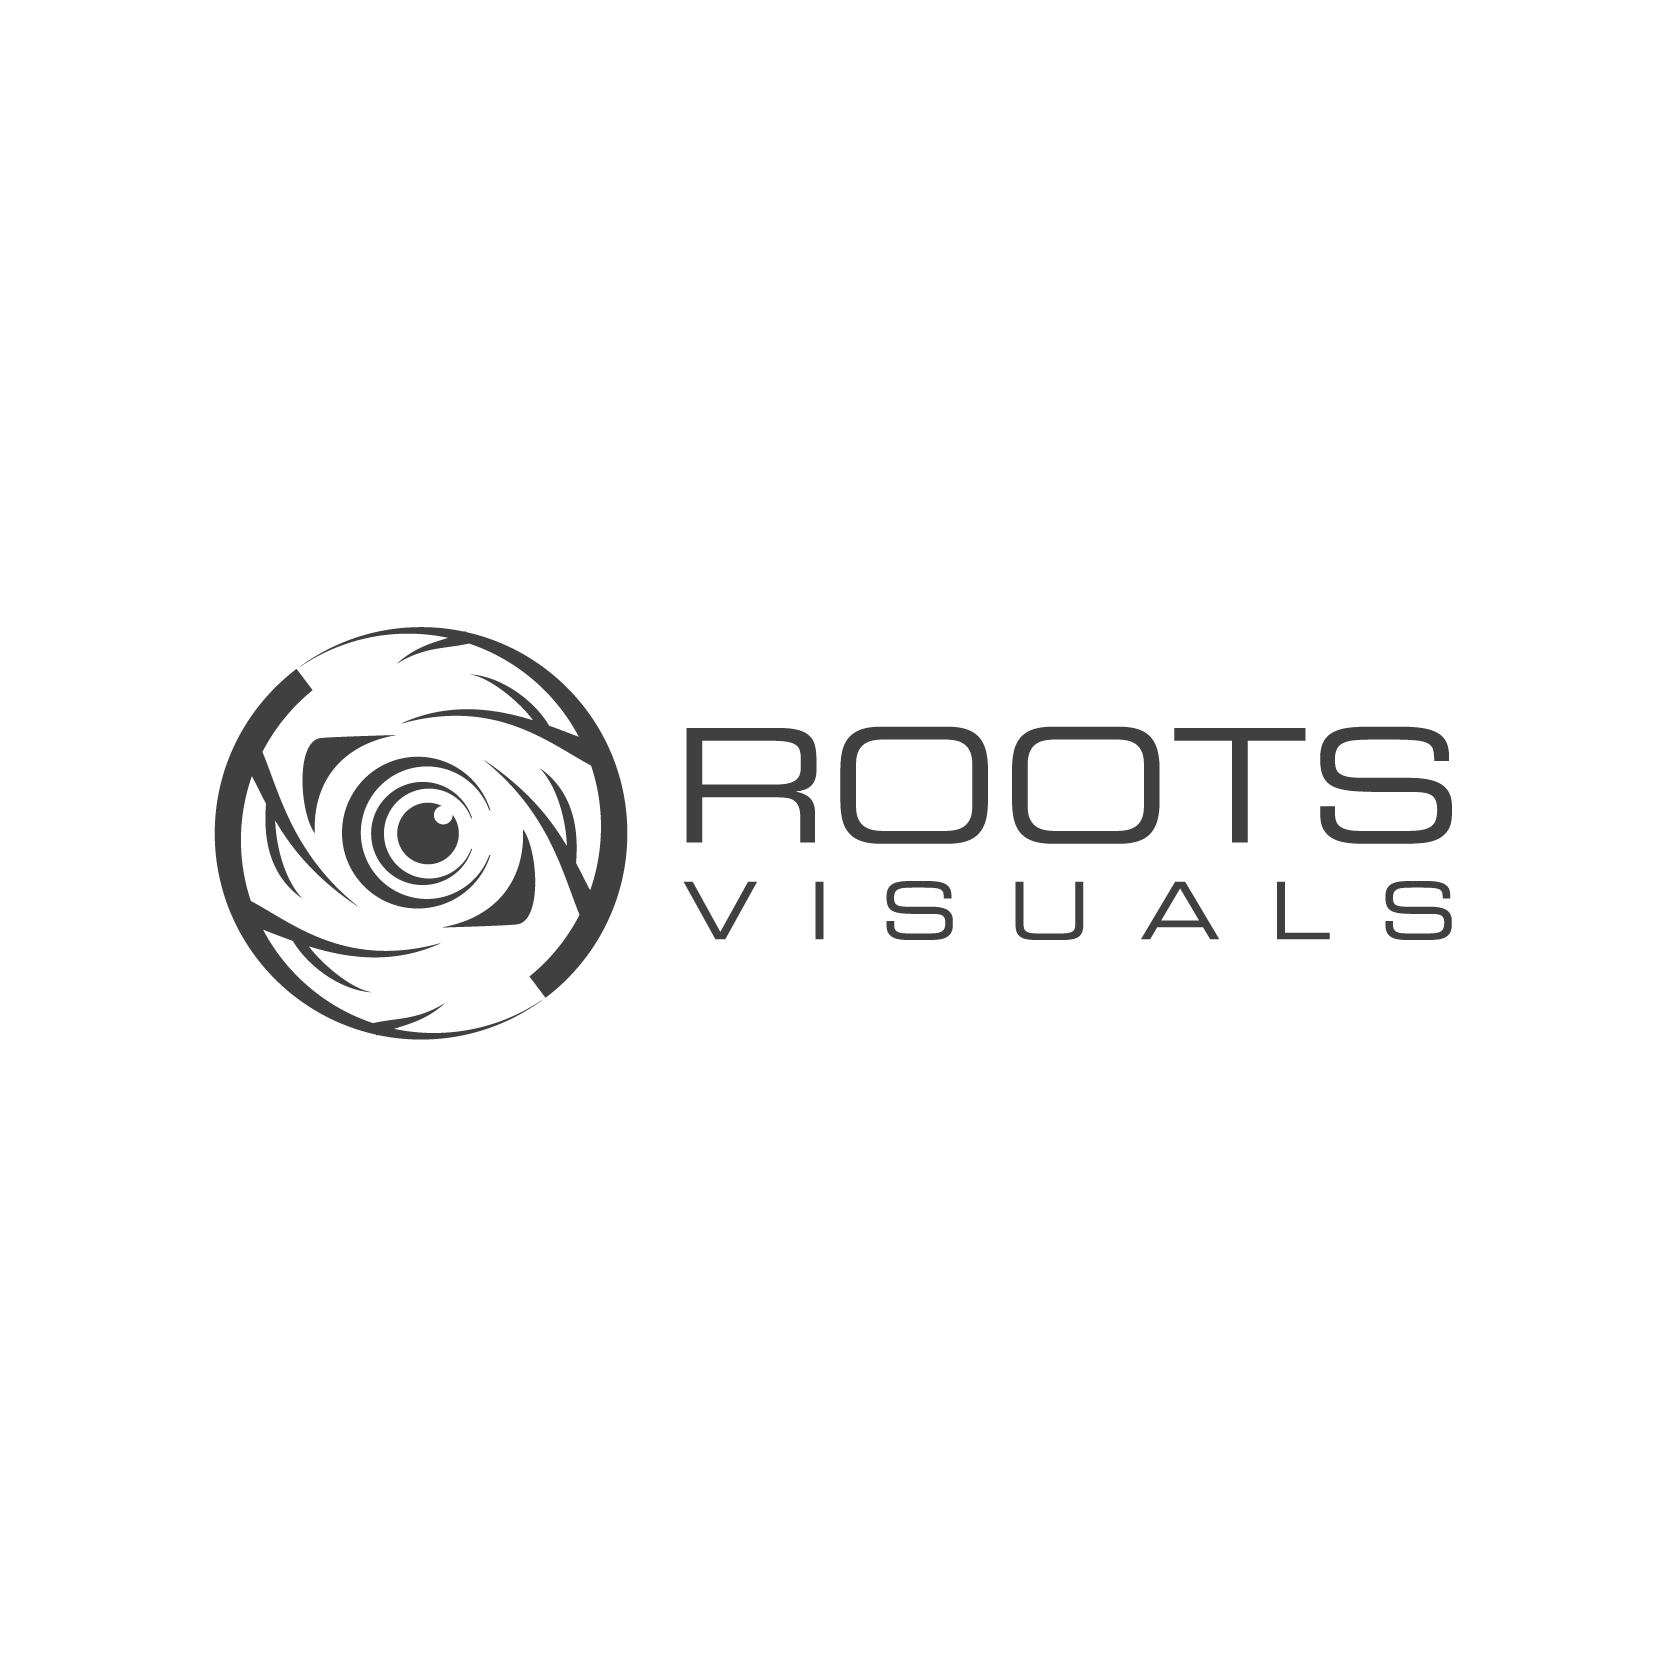 Design a next level logo for Roots Visuals